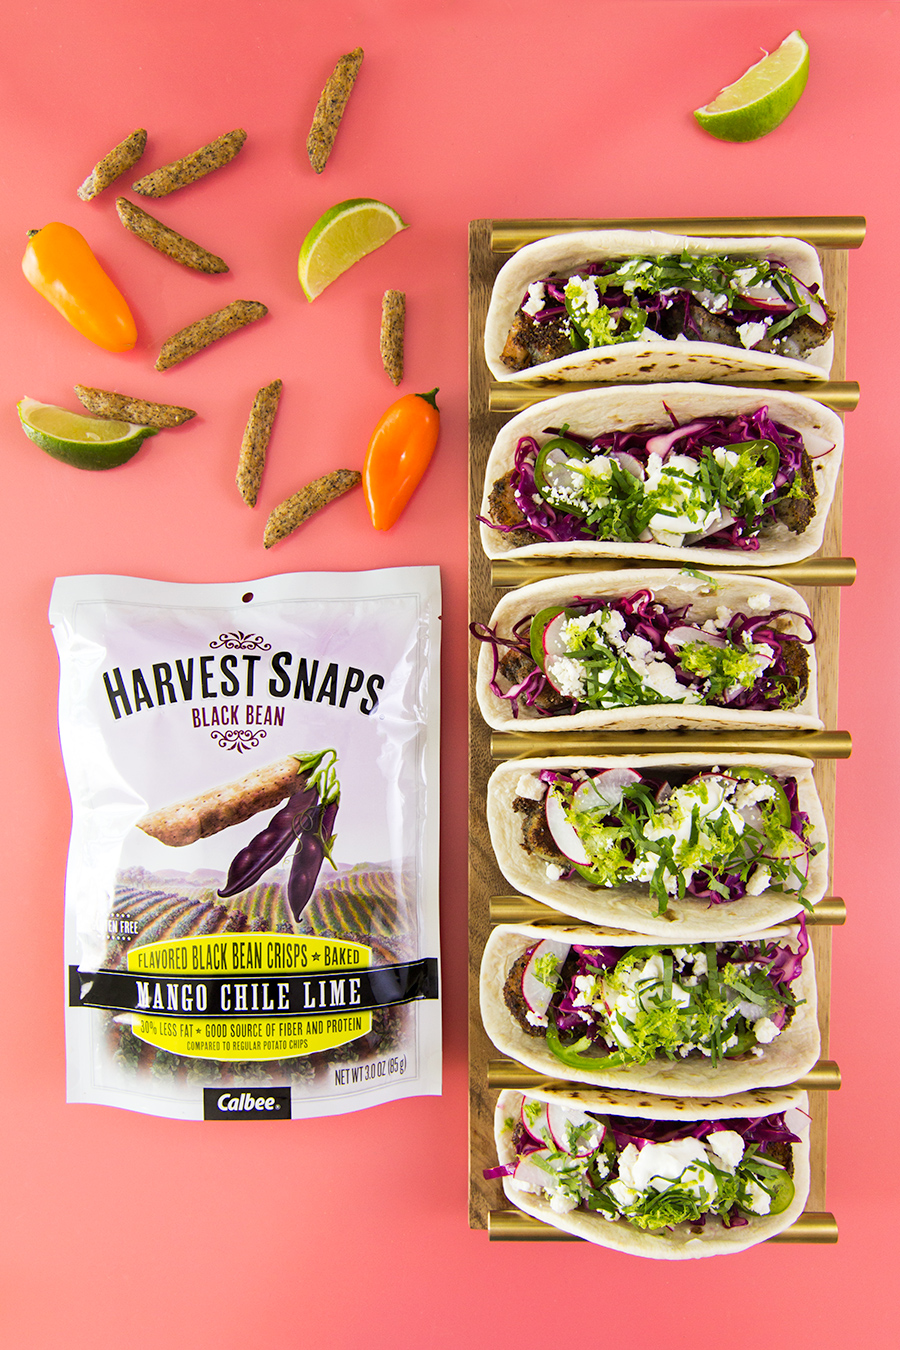 Get ready for taco Tuesday! Make these delicious crisp shrimp tacos using @Harvestsnaps in place of bread crumbs.